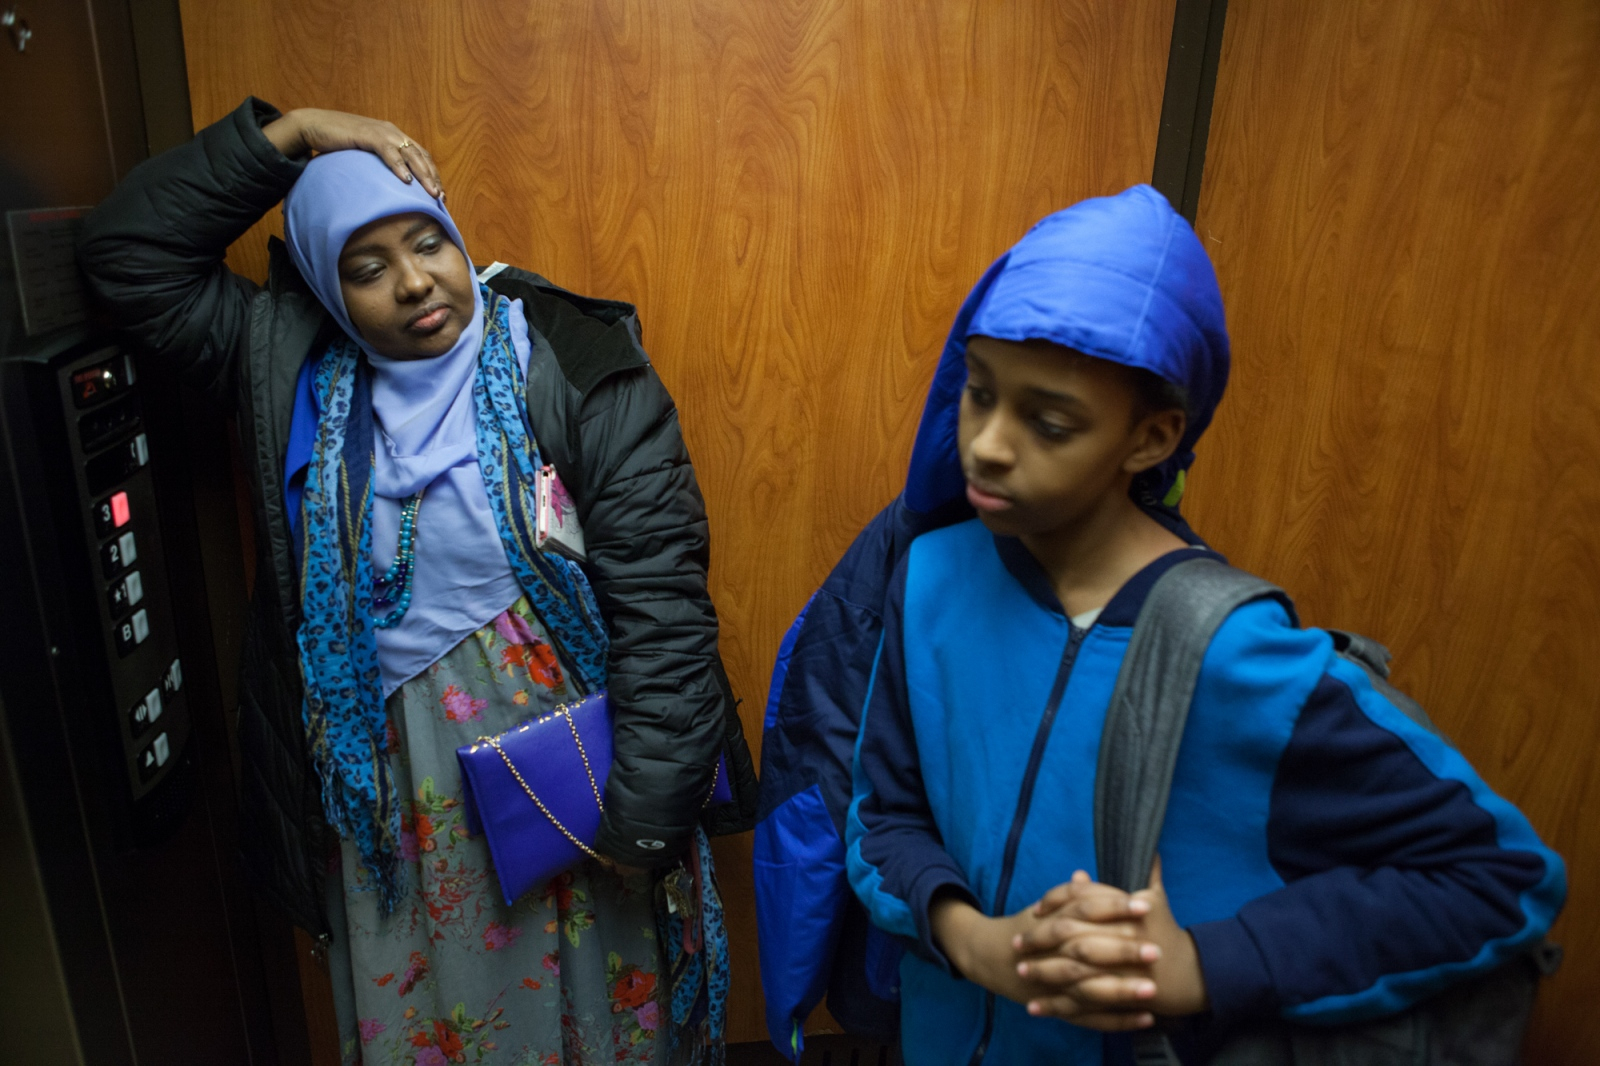 Saciido Shaie arrives home with her 13-year-old son after picking him up from school. Ms. Shaie worries that her son's sense of identity and belonging in the US will be harmed by increasing anti-Muslim rhetoric.